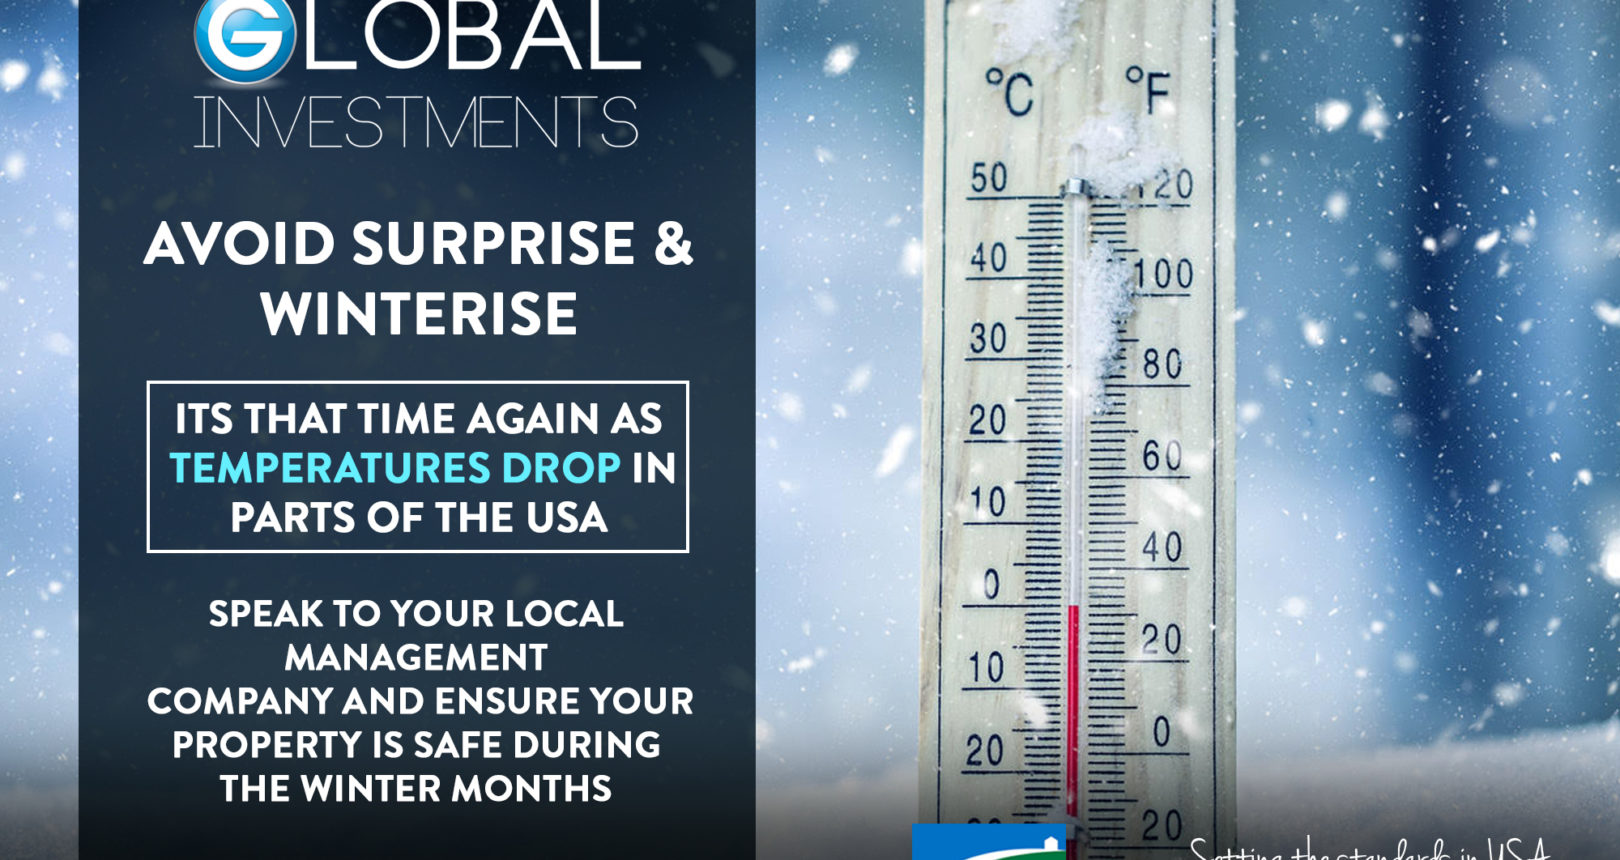 IT IS  THAT TIME AGAIN AS TEMPERATURES DROP IN PARTS OF THE USA.